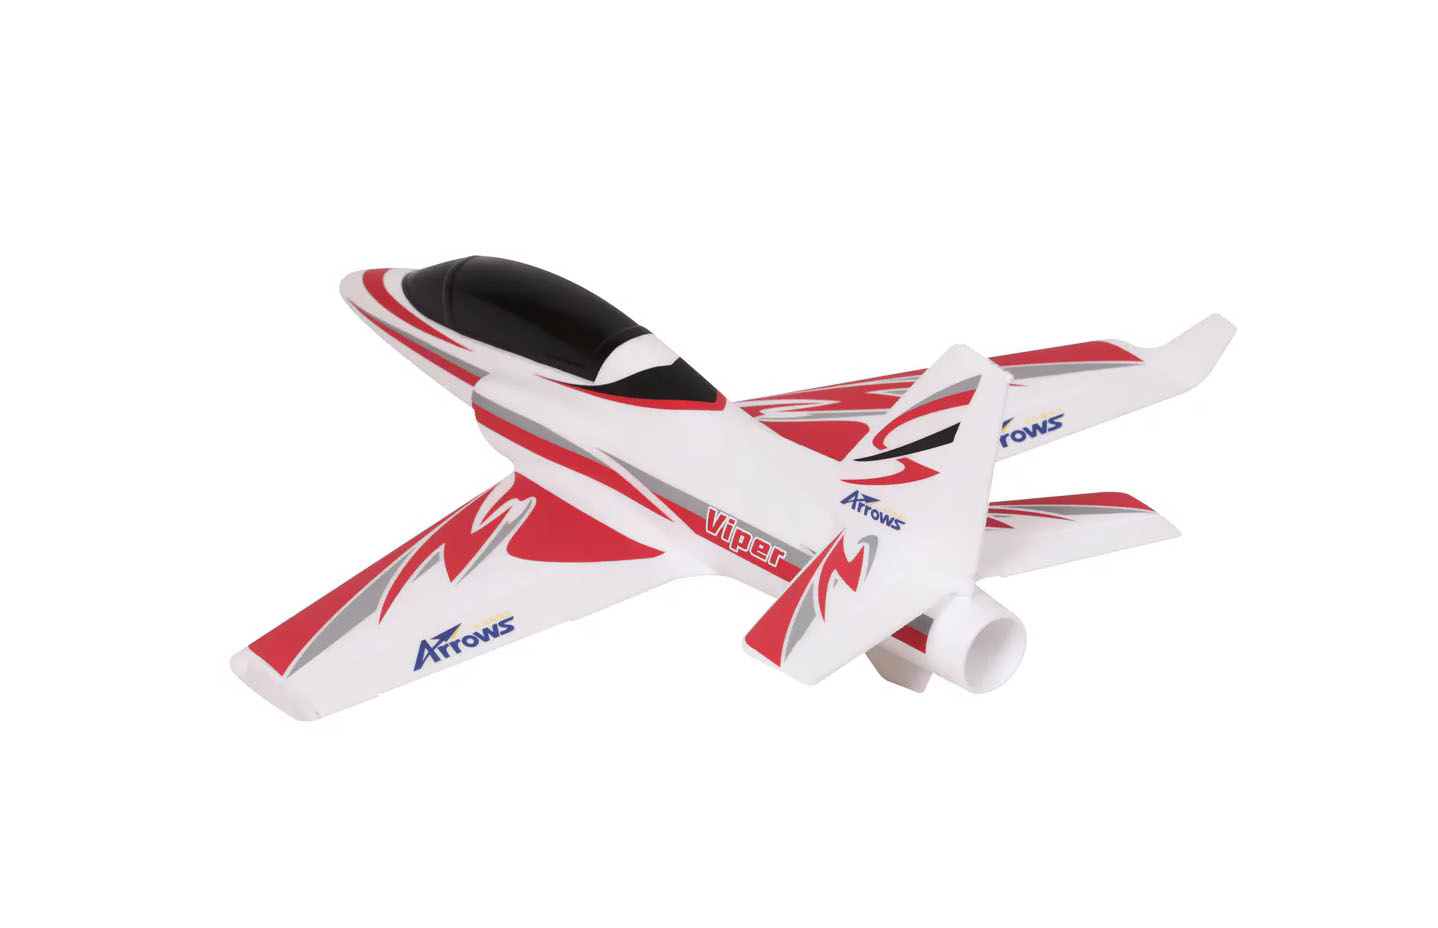 Viper Arrows RC